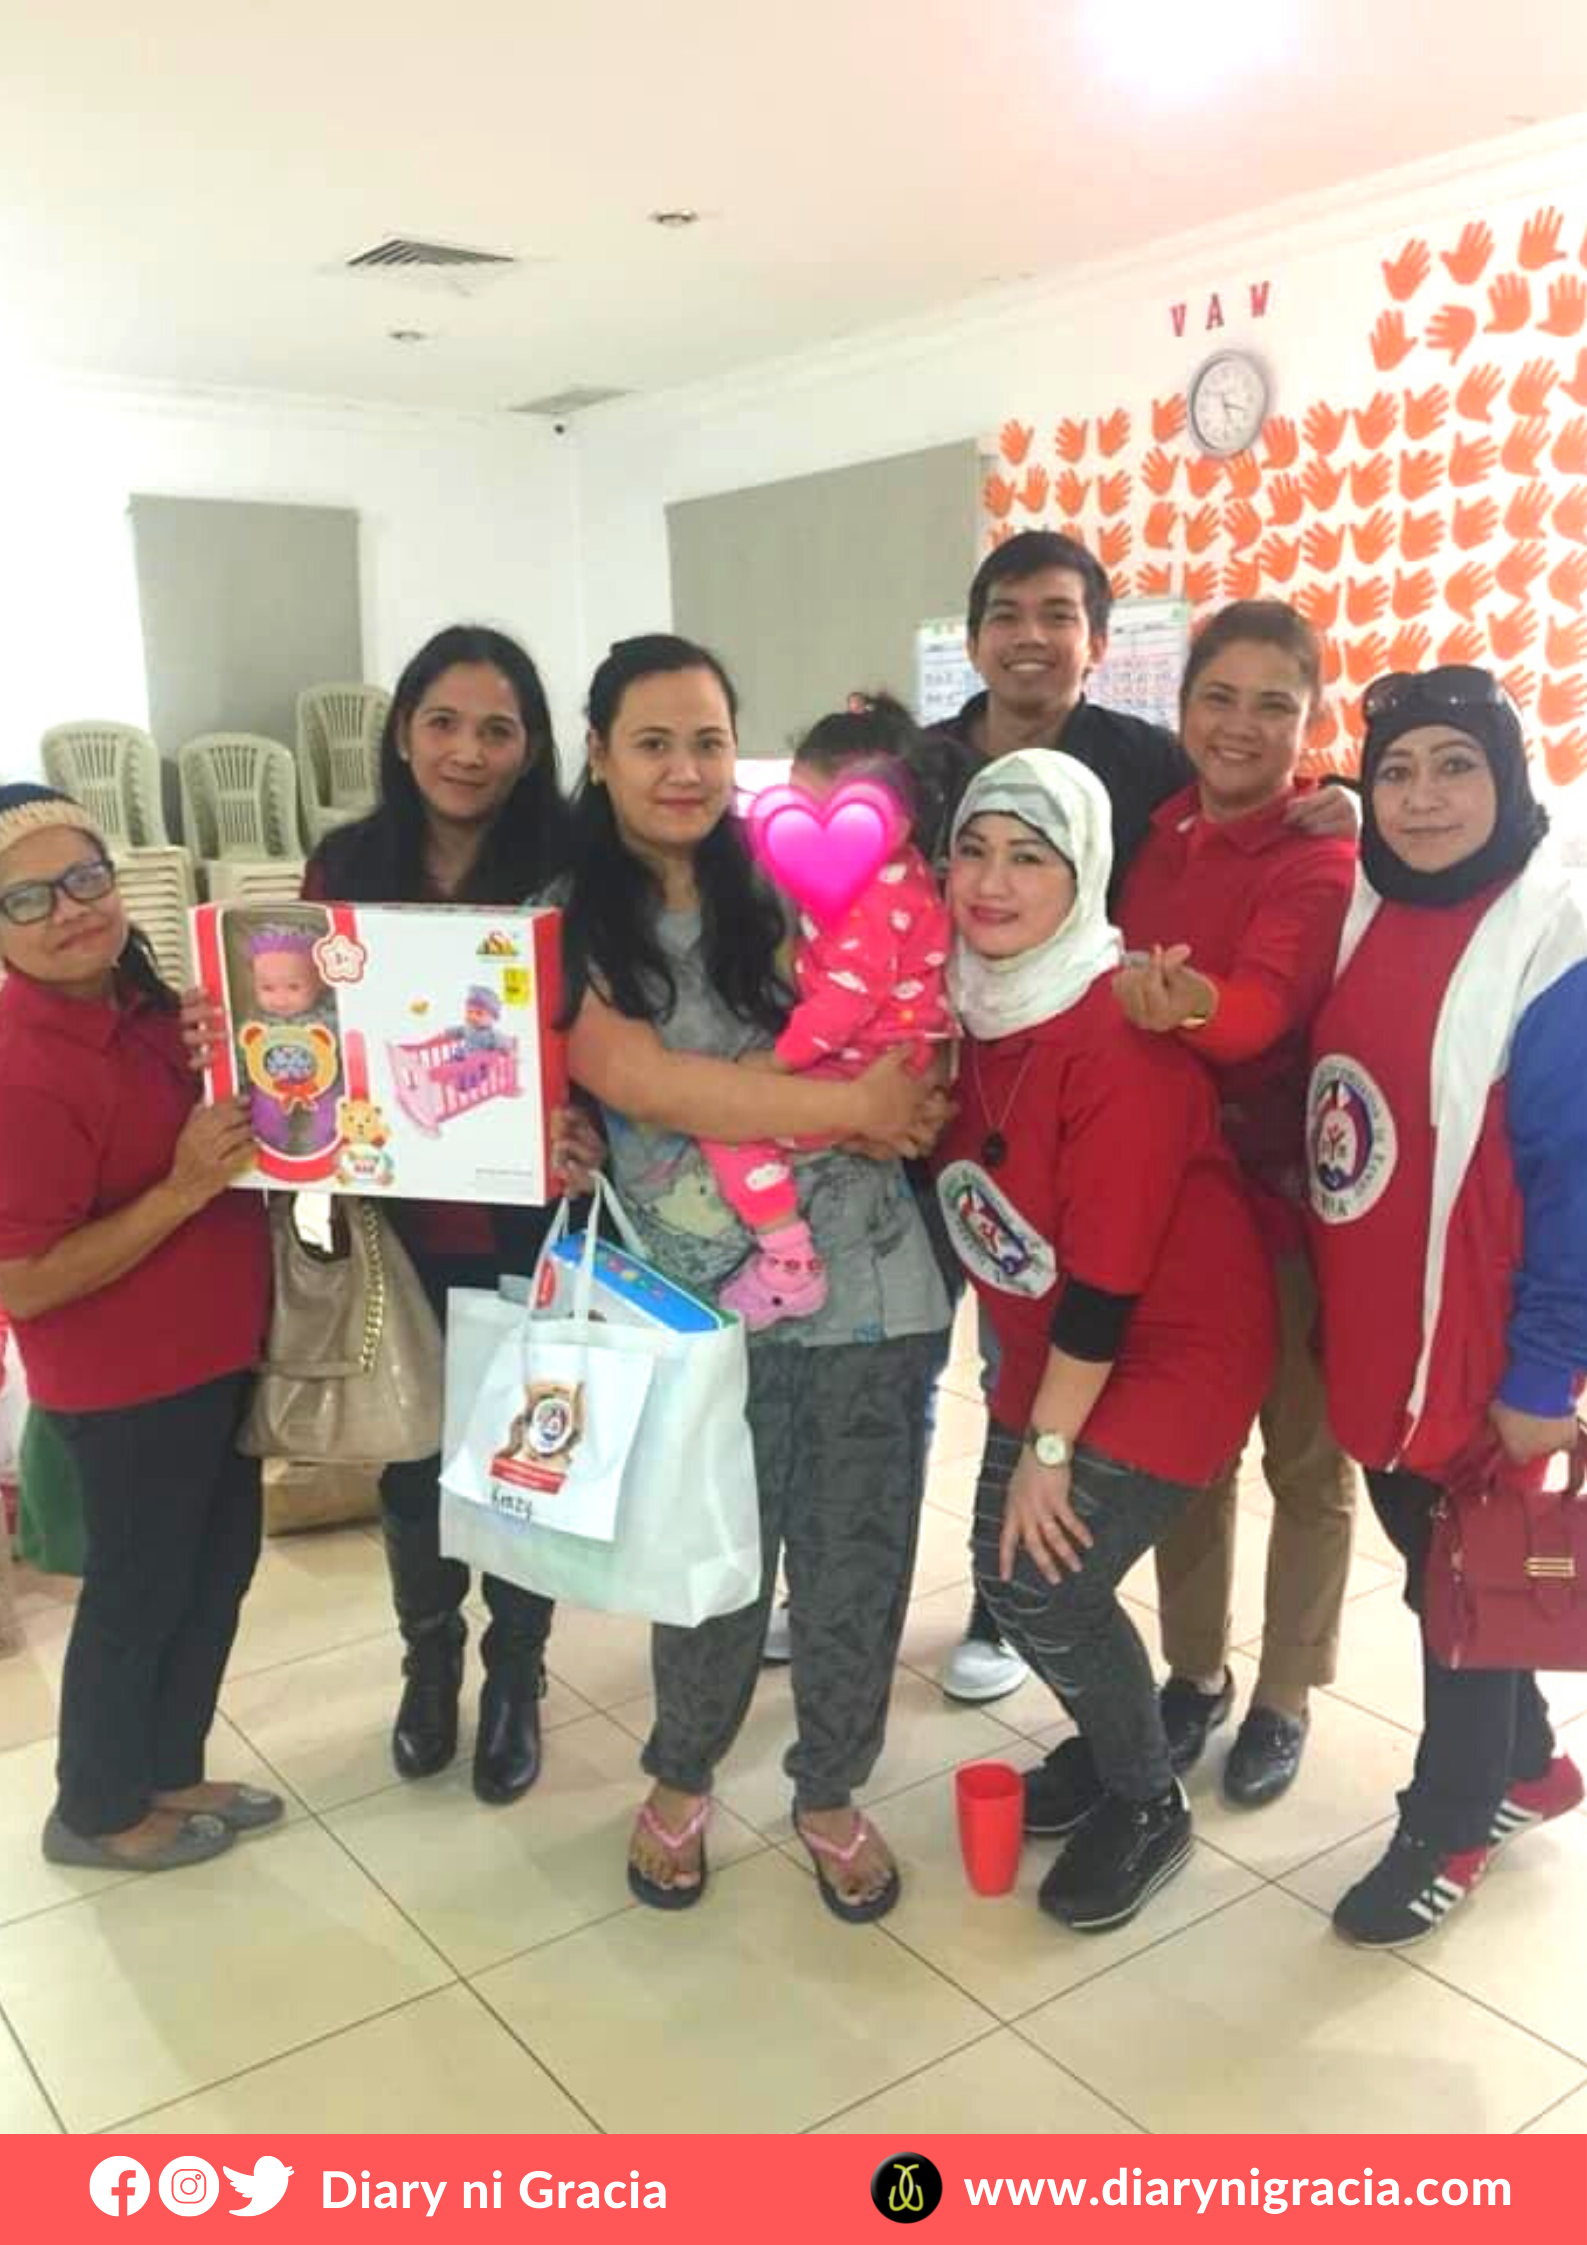 Kenzy with the IWOK team, receiving the gift